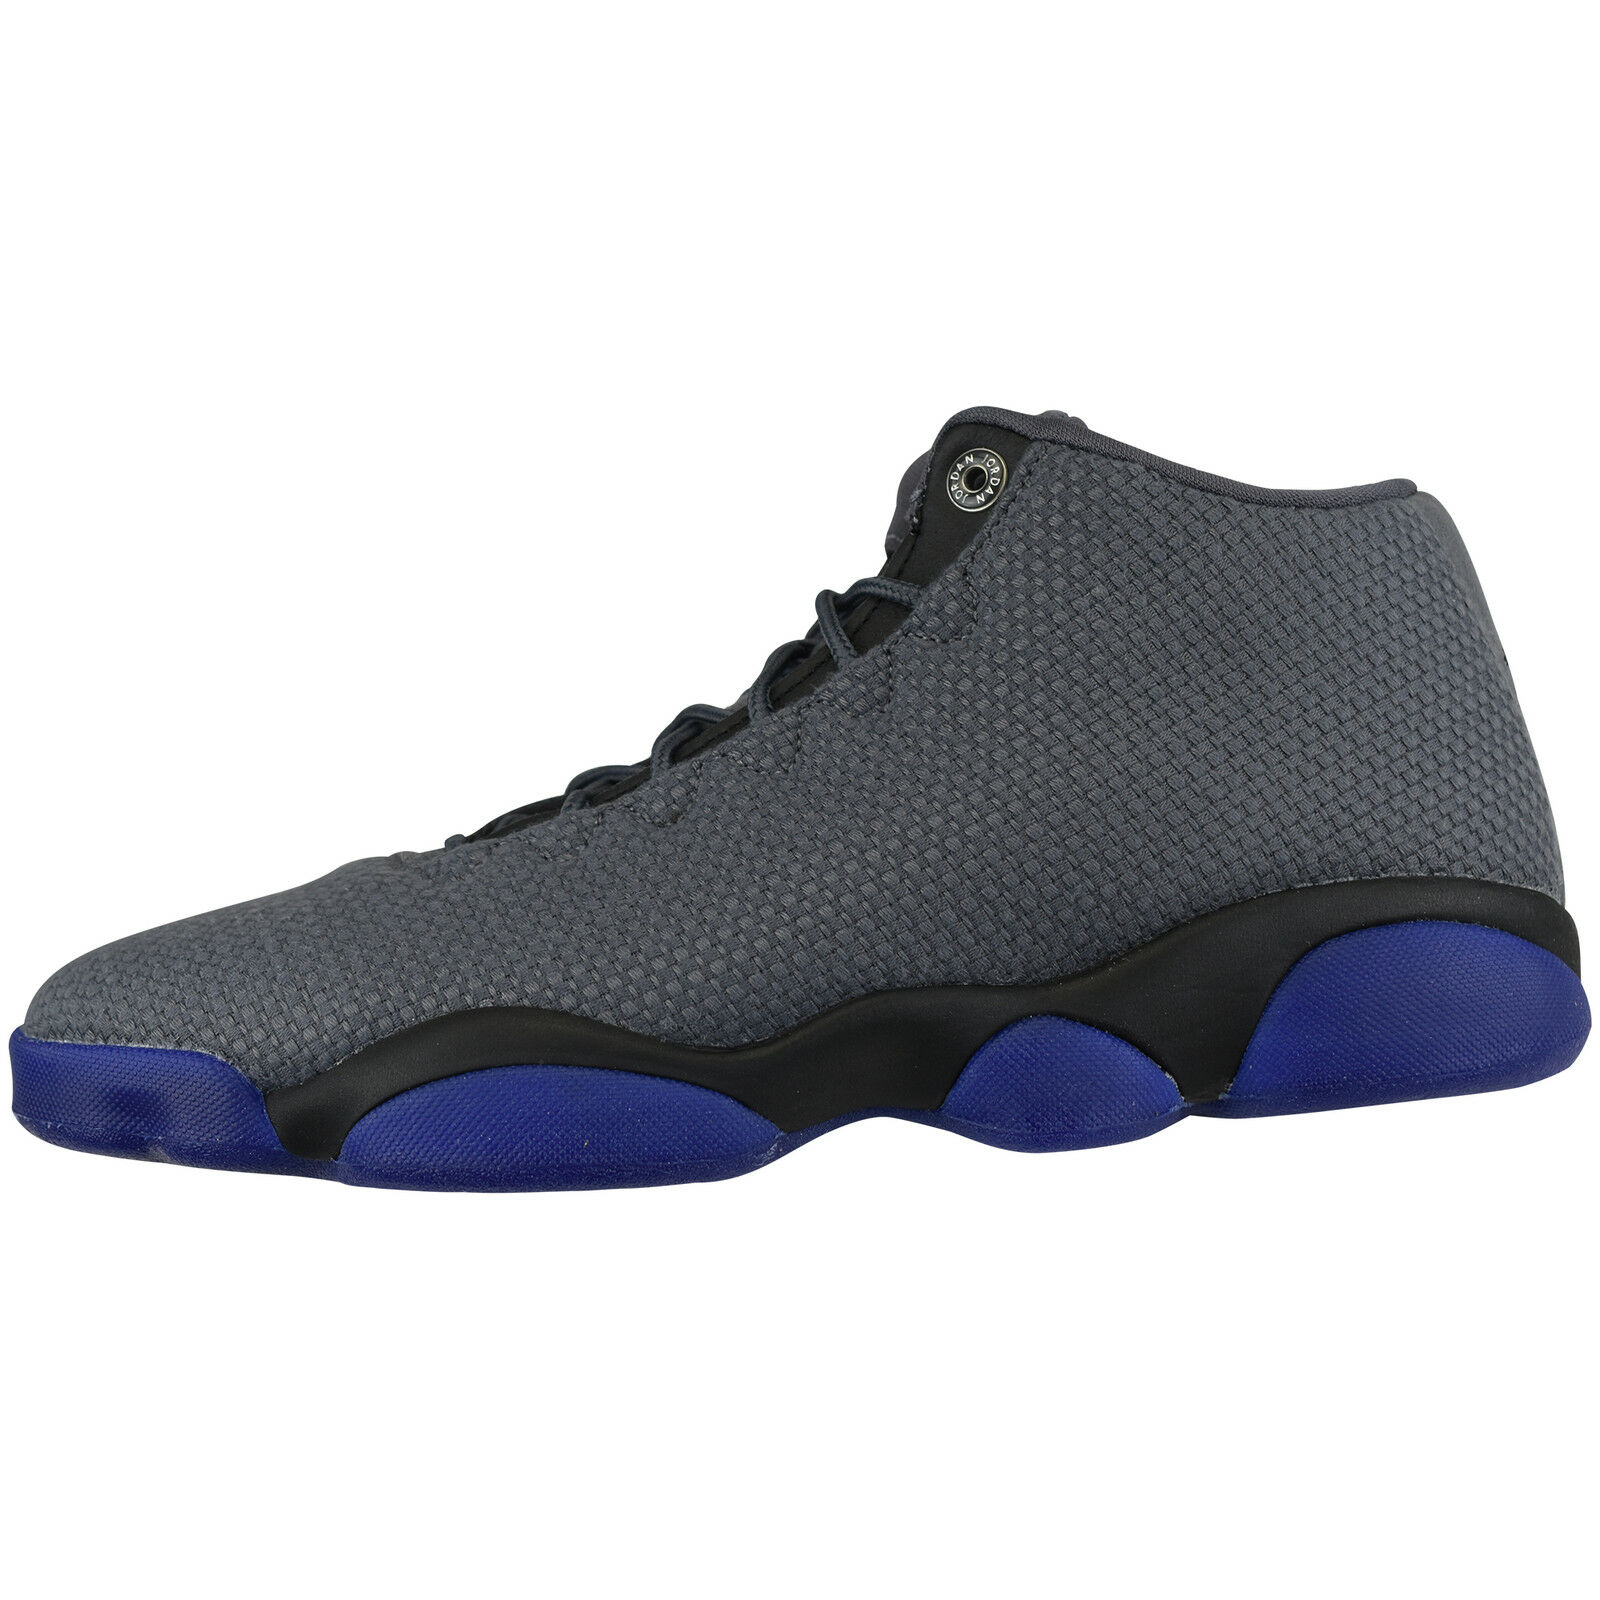 Nike Air Jordan Horizon Low 845098-002 Basketball Lifestyle Leather shoes